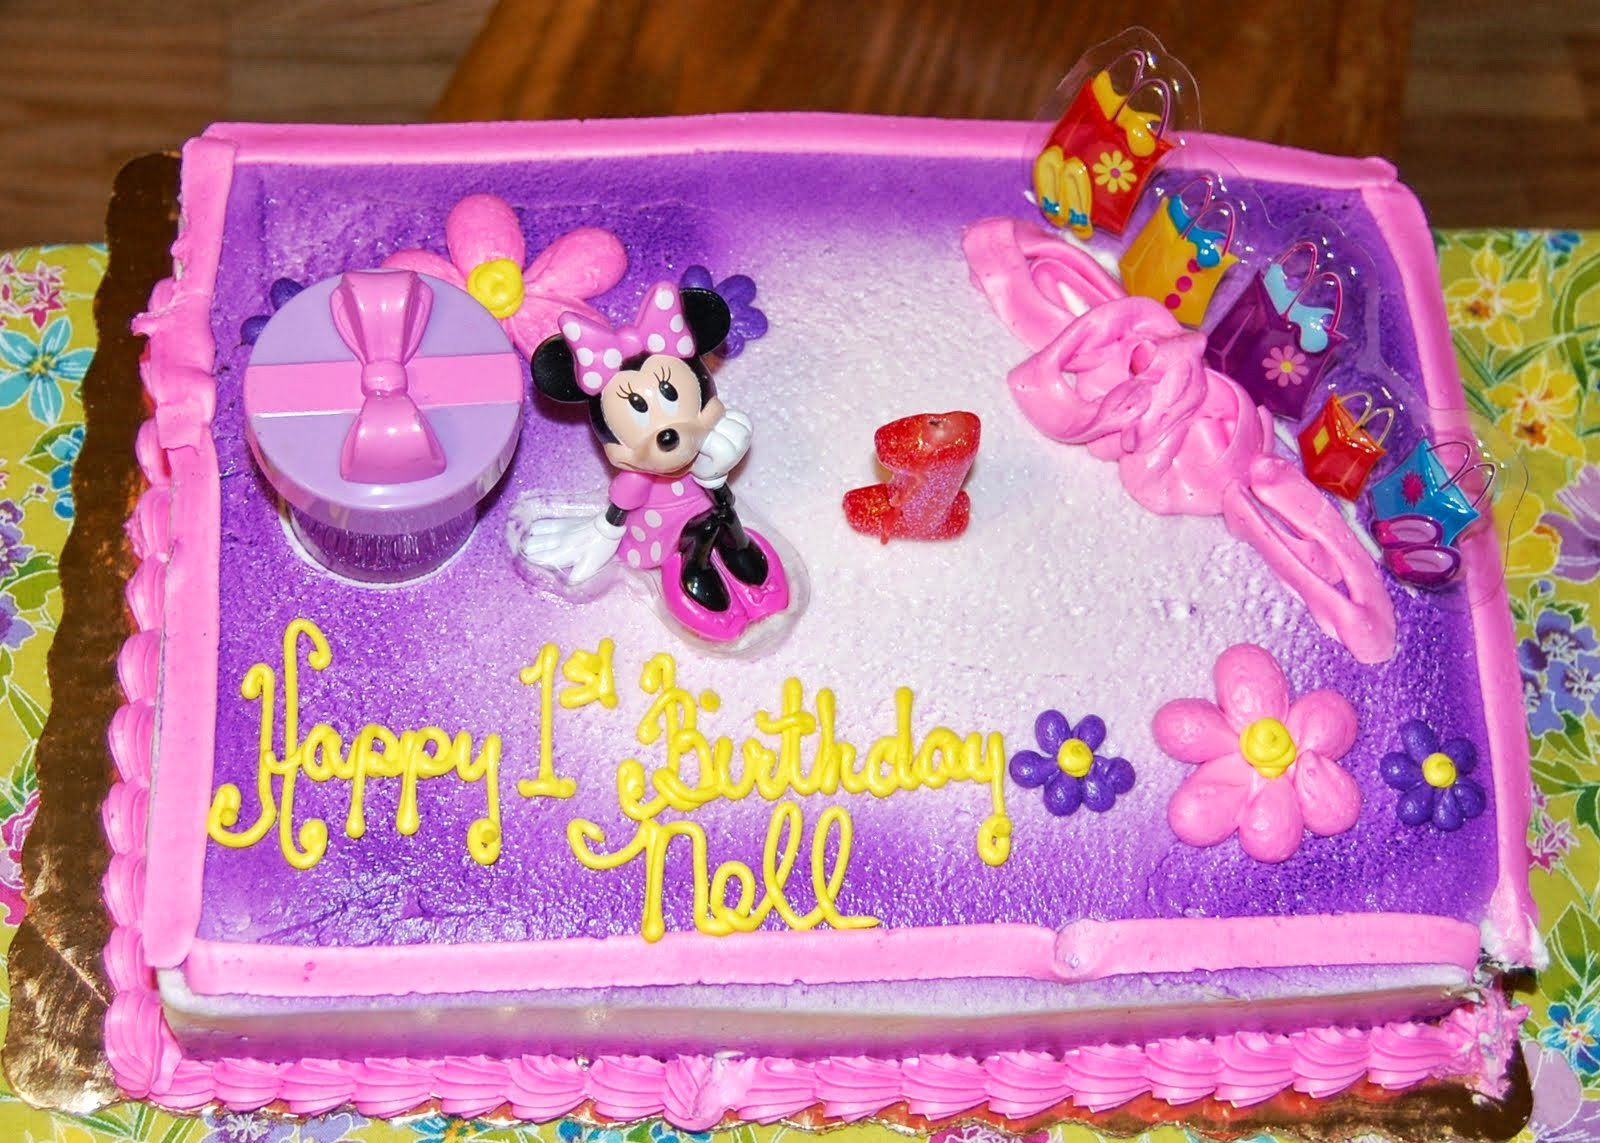 Best ideas about Publix Birthday Cake Designs . Save or Pin Publix Birthday Cakes Now.